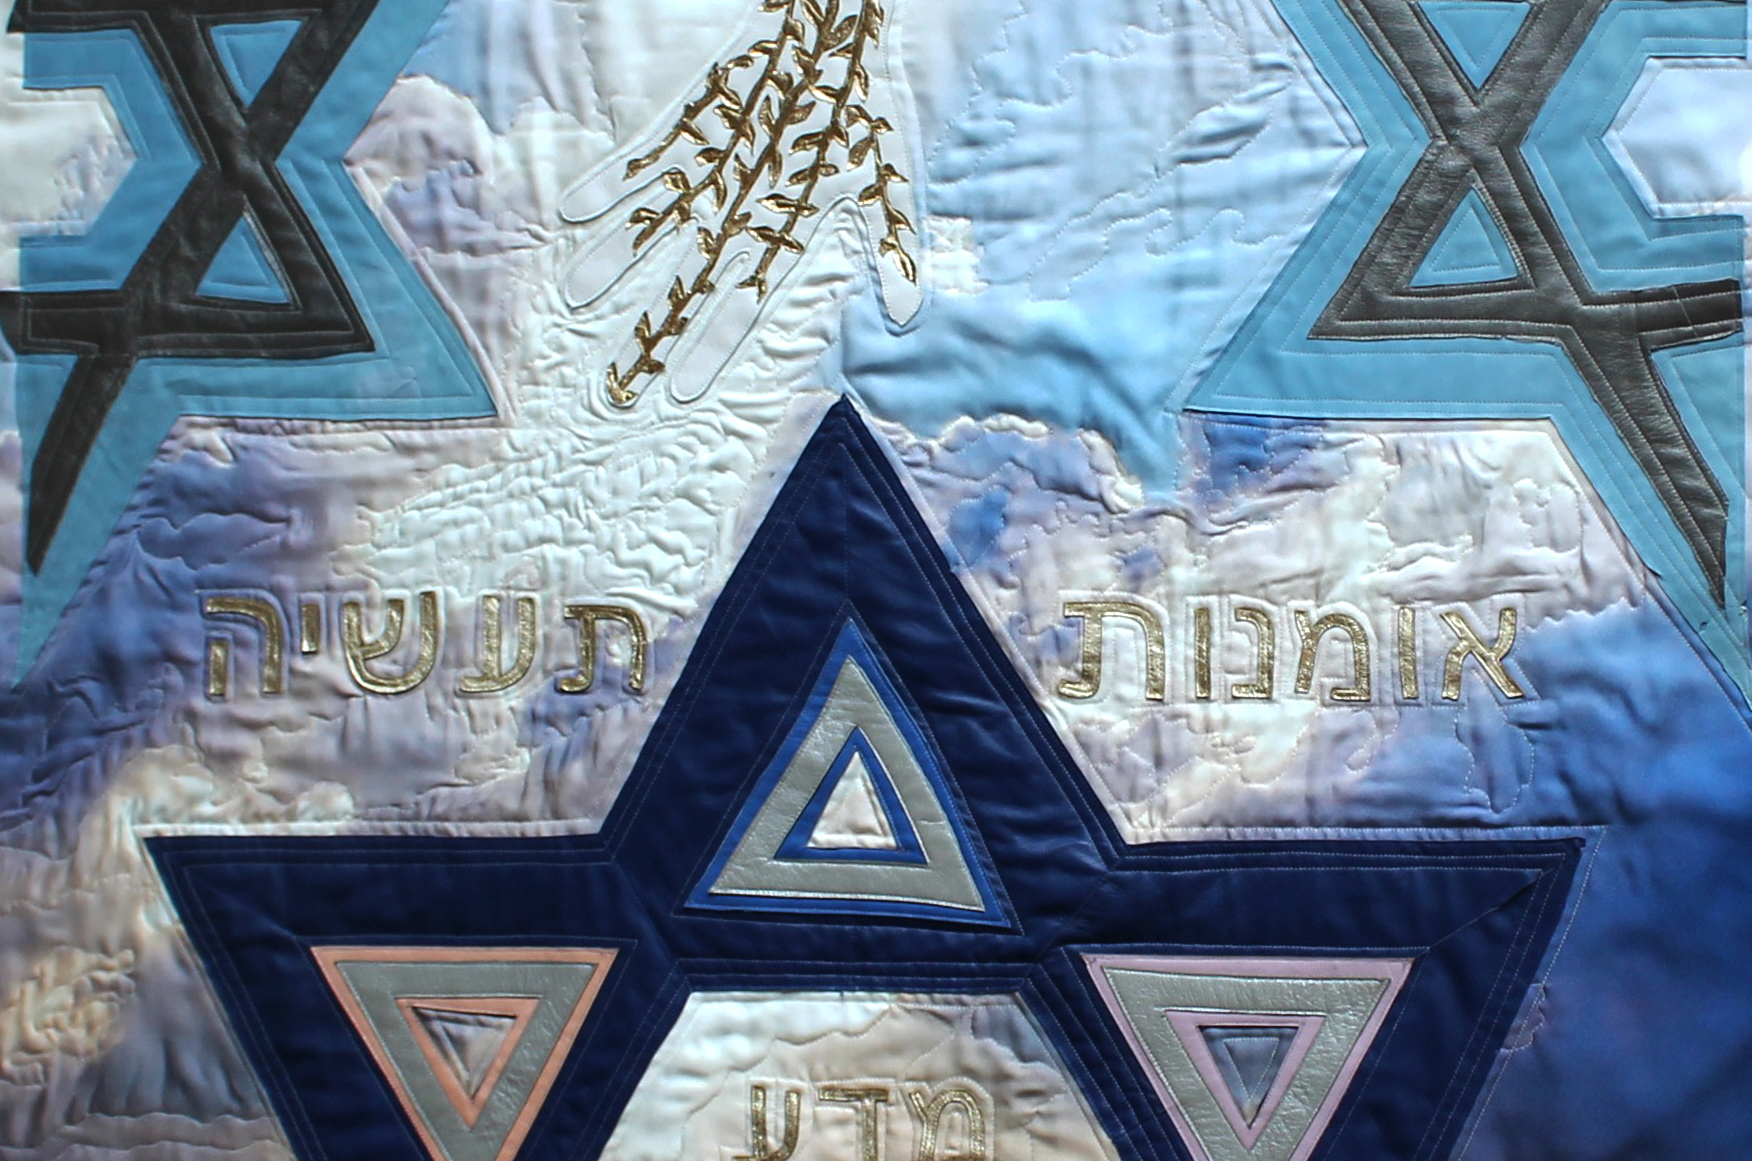 Artwork that depicts golden hand of God and blue star of David